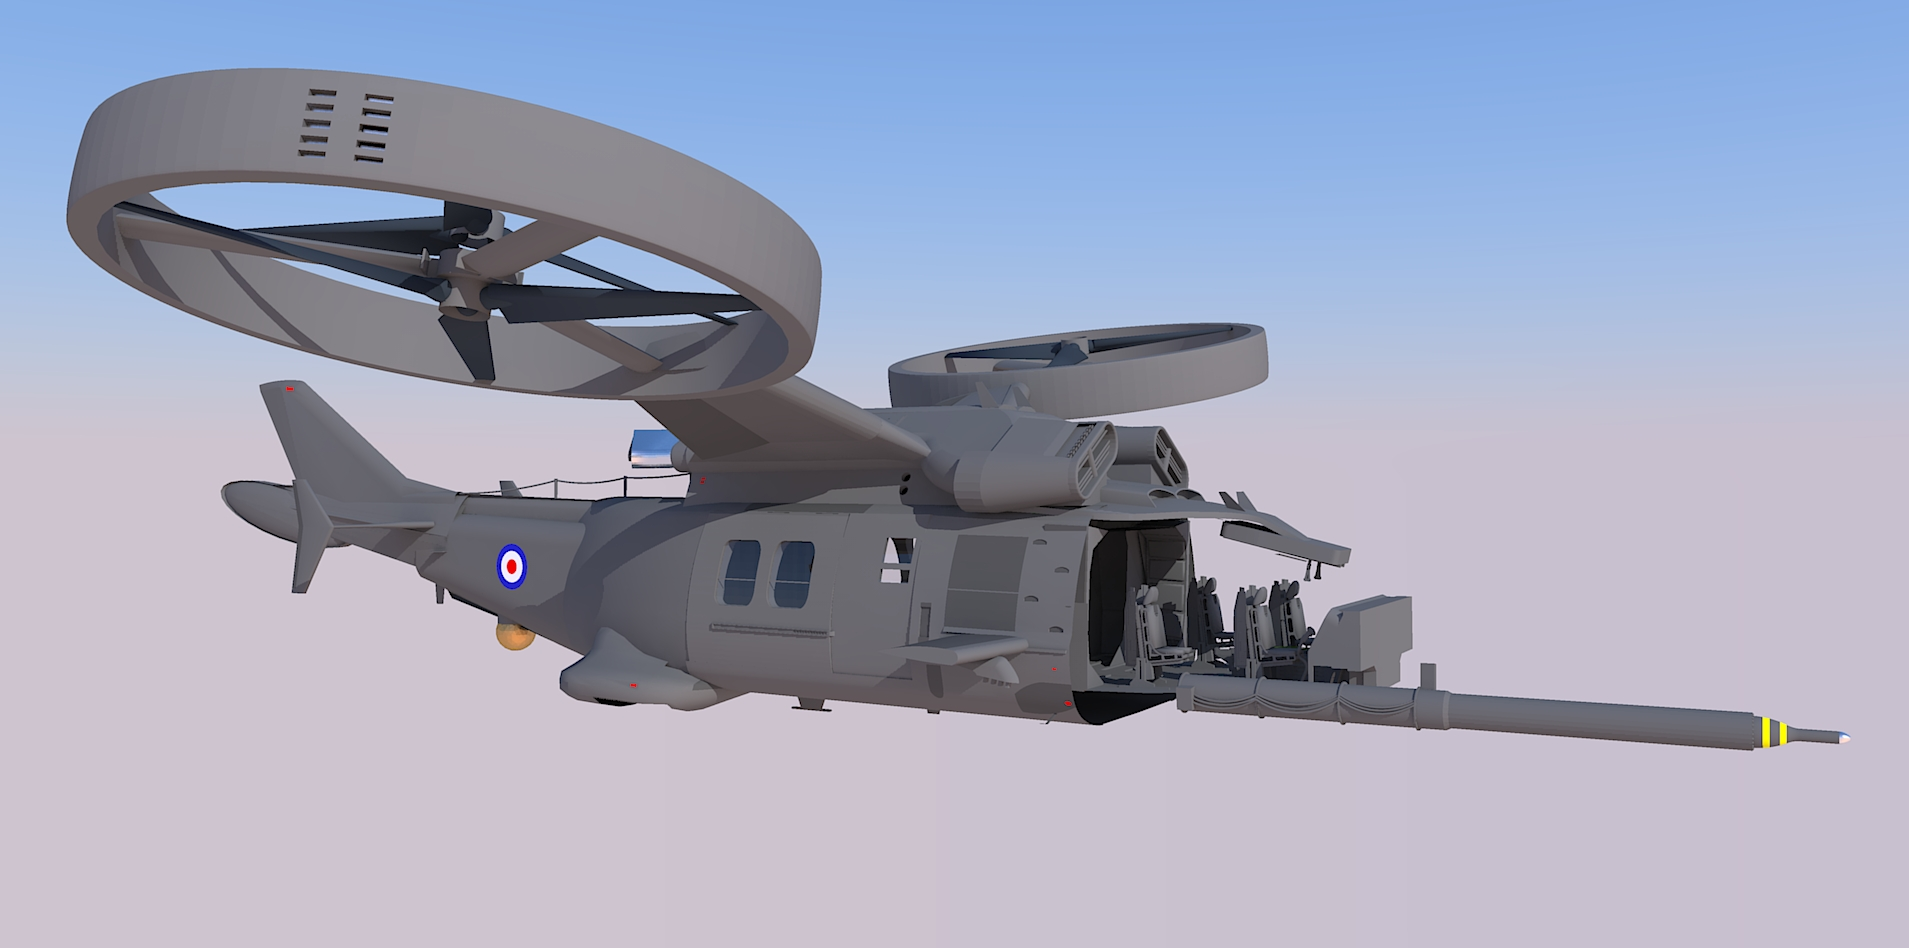 make model helicopter with Avatar Helicopter Build December 09 Current on Watch further 4614 And Counting 180956343 furthermore First Marine Corps Ch 53k Arrives Patuxent River Testing besides Page 15 besides Watch.